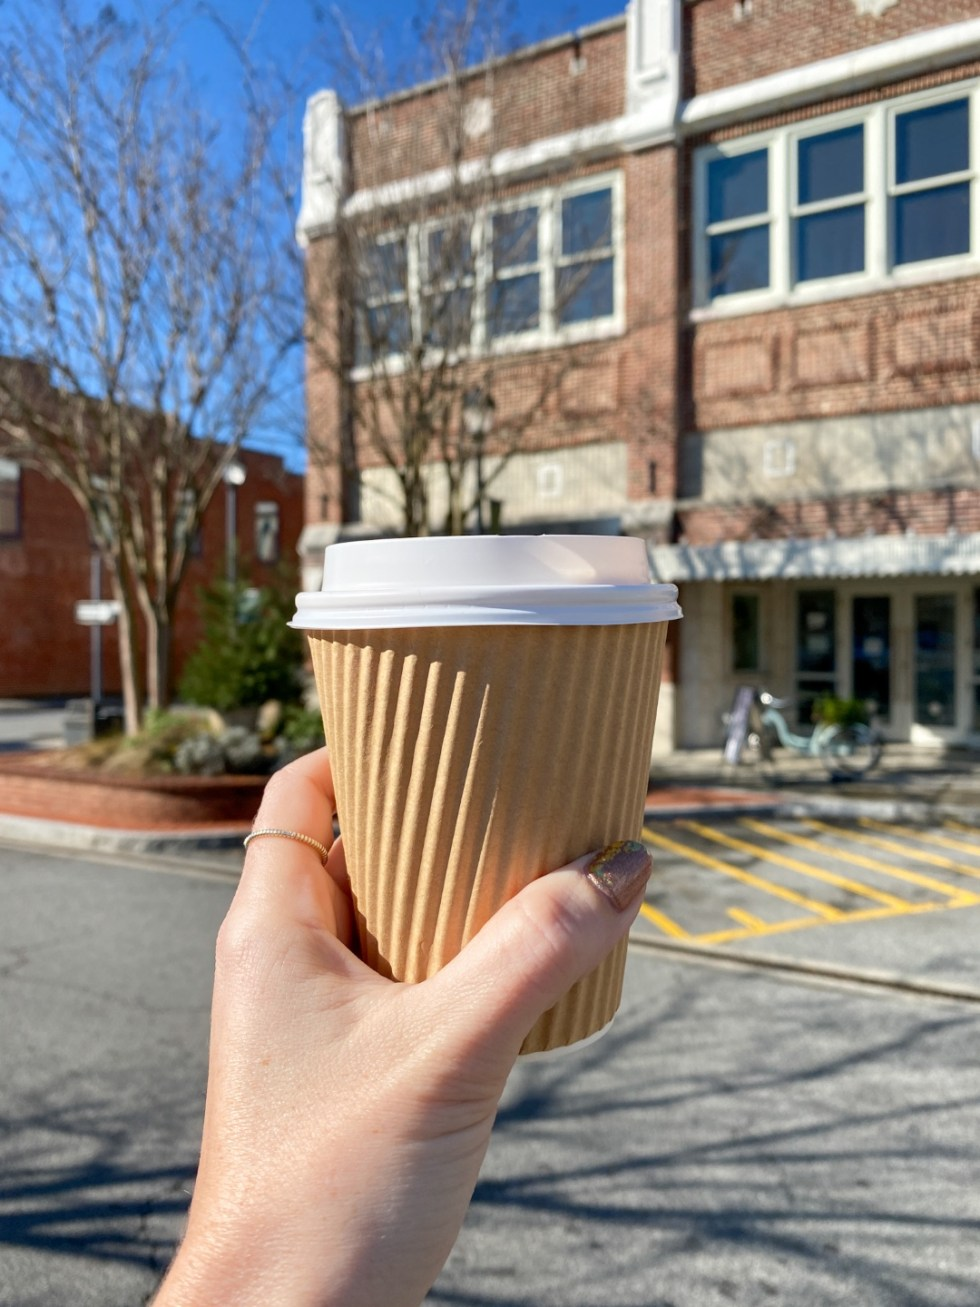 A Guide to Greenville, NC - I'm Fixin' To - @imfixintoblog |Things to do in Greenville NC by popular NC blog, I'm Fixin' To: image of a woman holding a coffee cup.